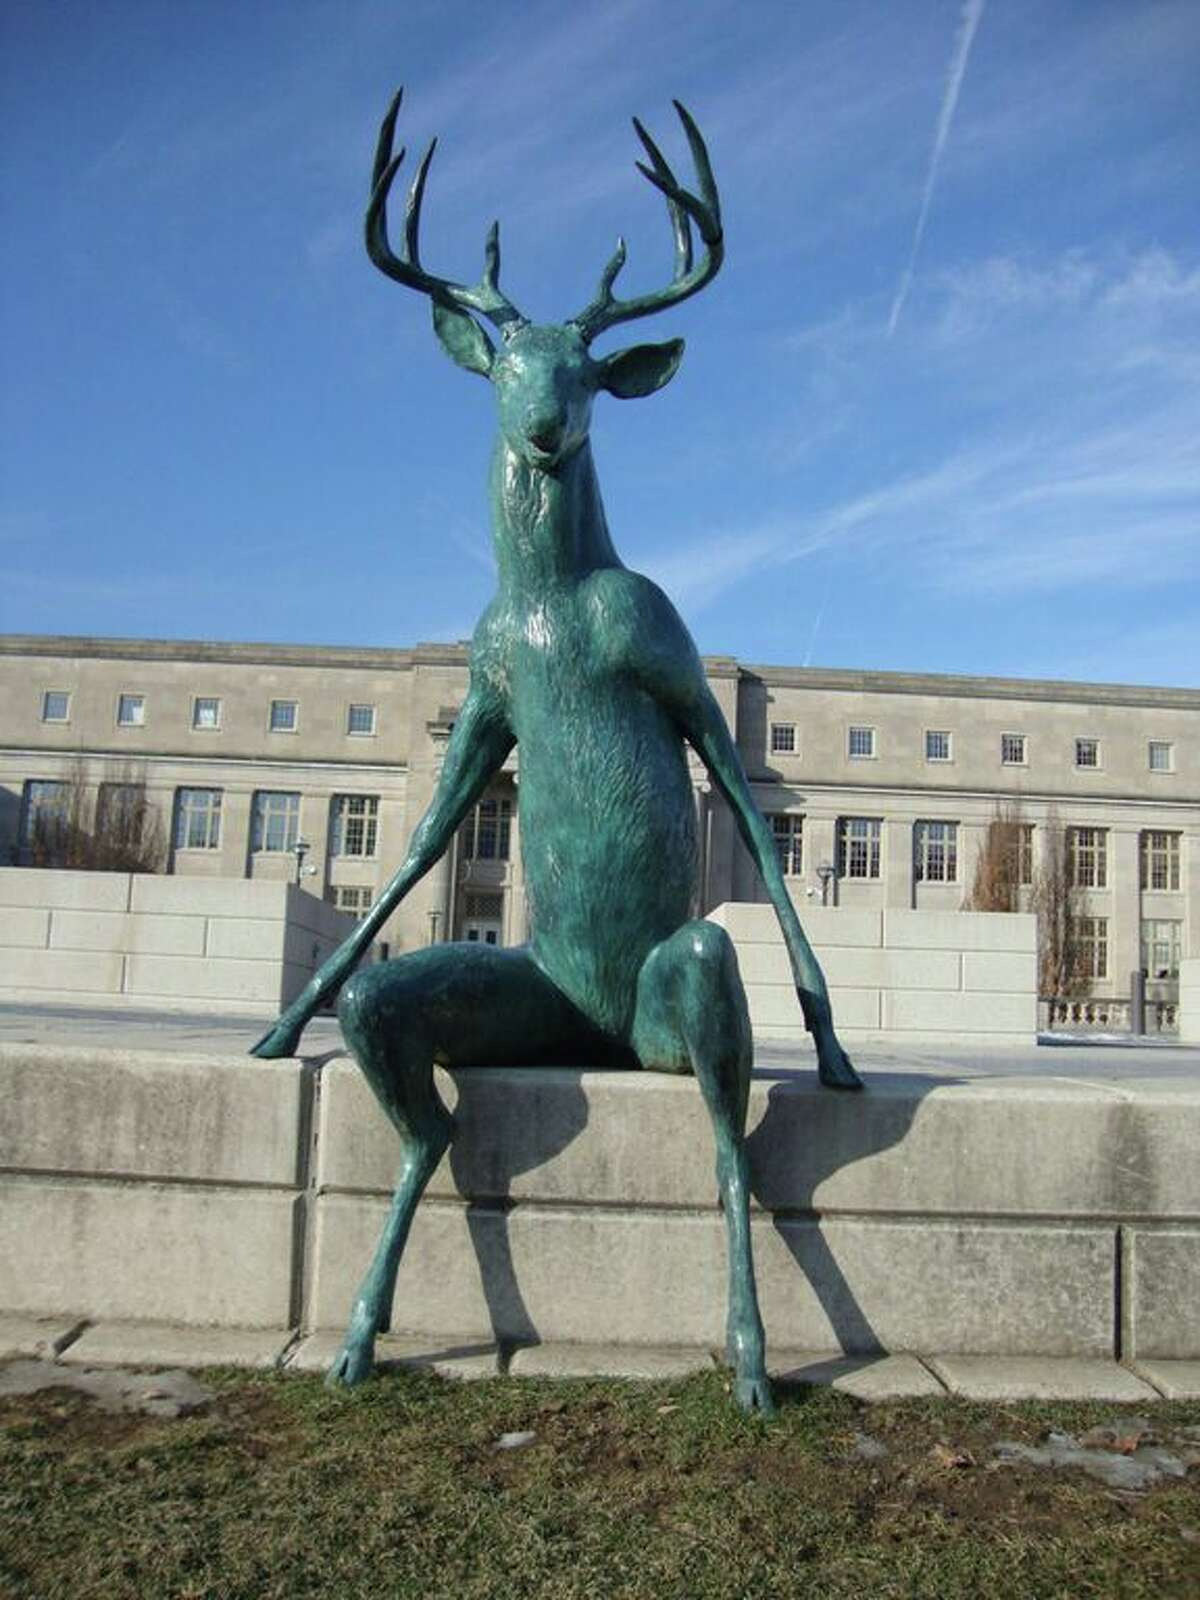 This sculpture of a deer is part of the new public art display on the river in Columbus, Ohio.